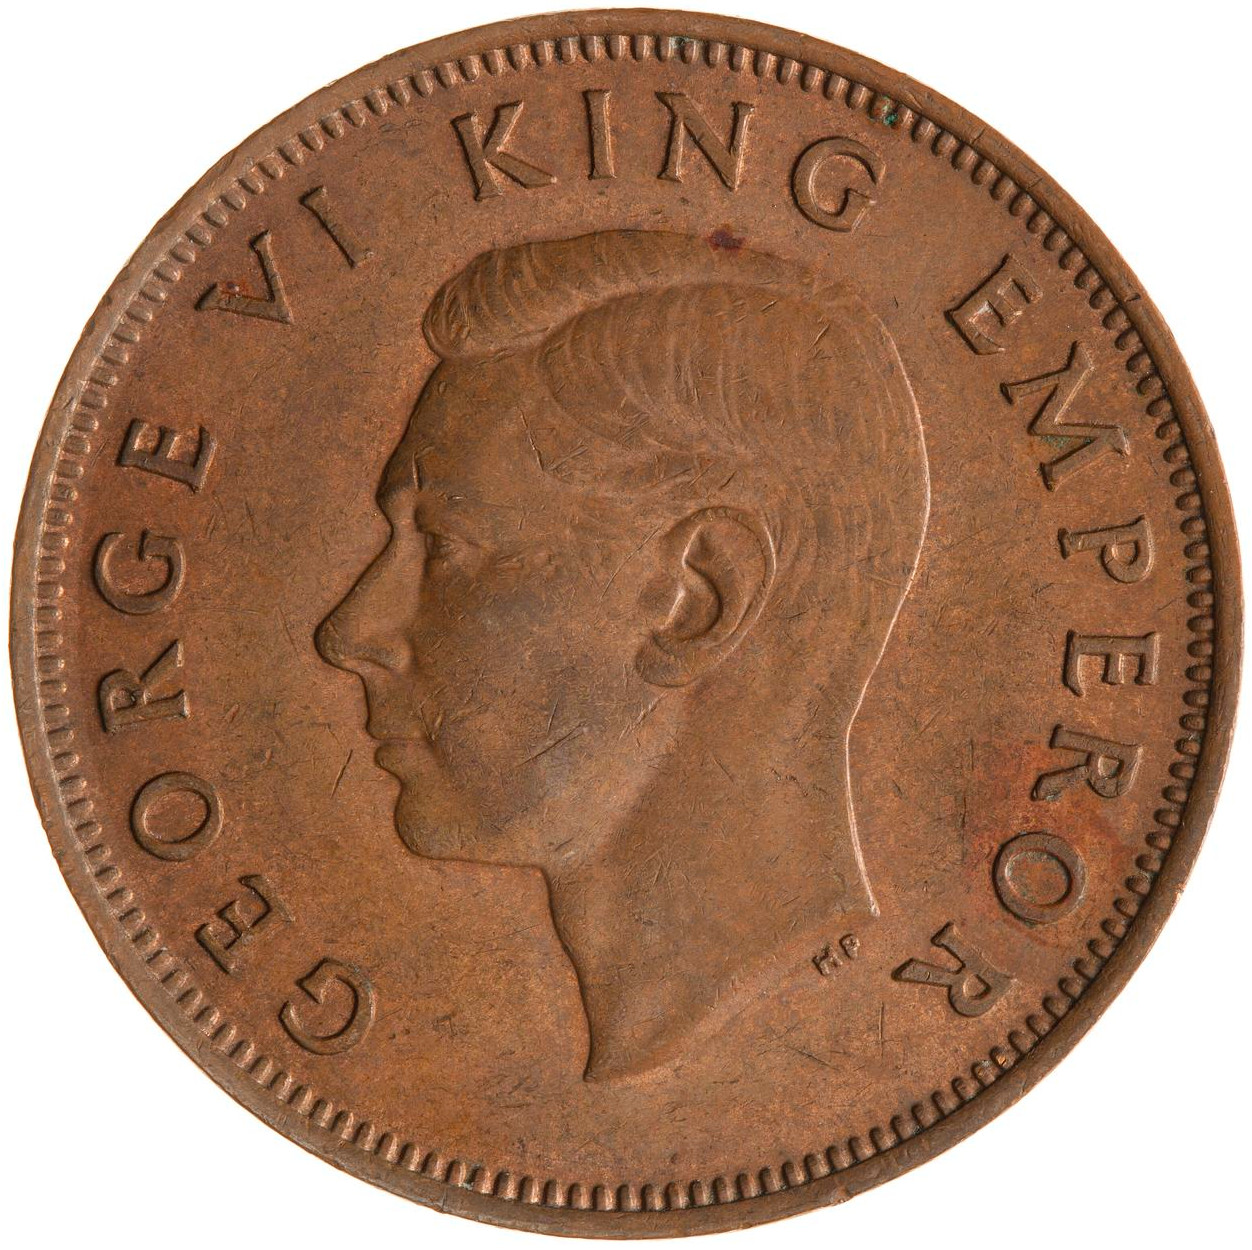 Halfpenny 1944: Photo Coin - 1/2 Penny, New Zealand, 1944